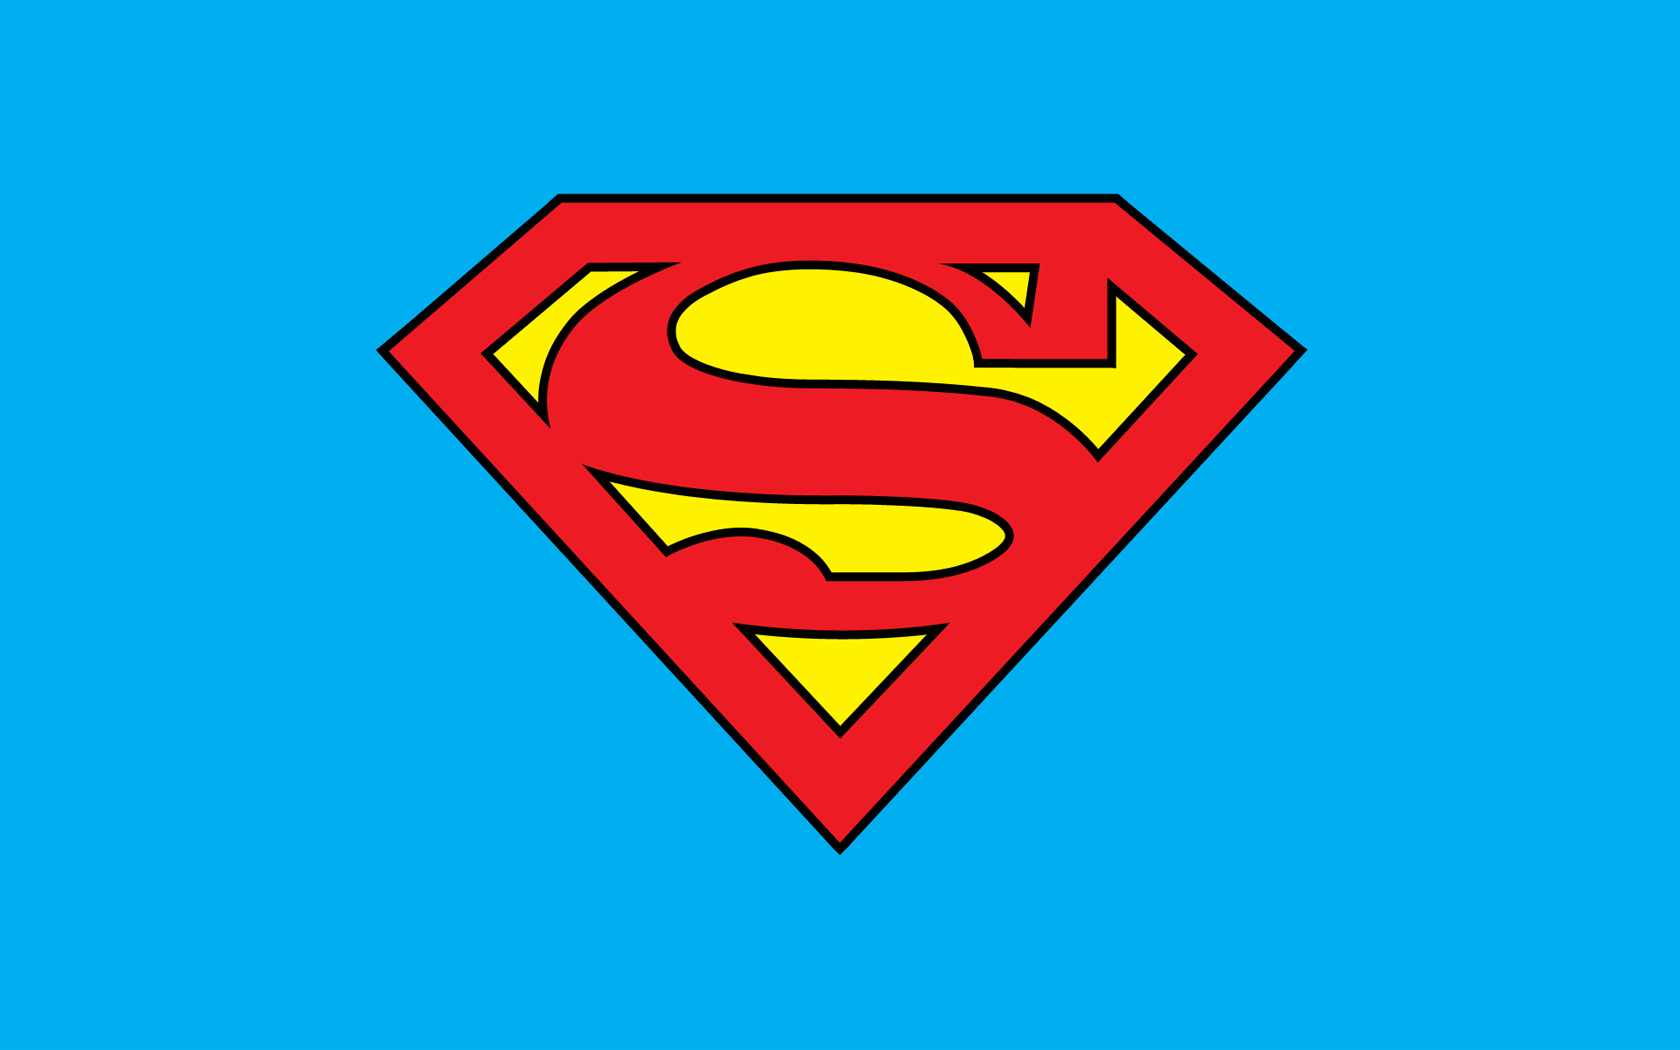 İllustration of the red and yellow Superman Logo free image download